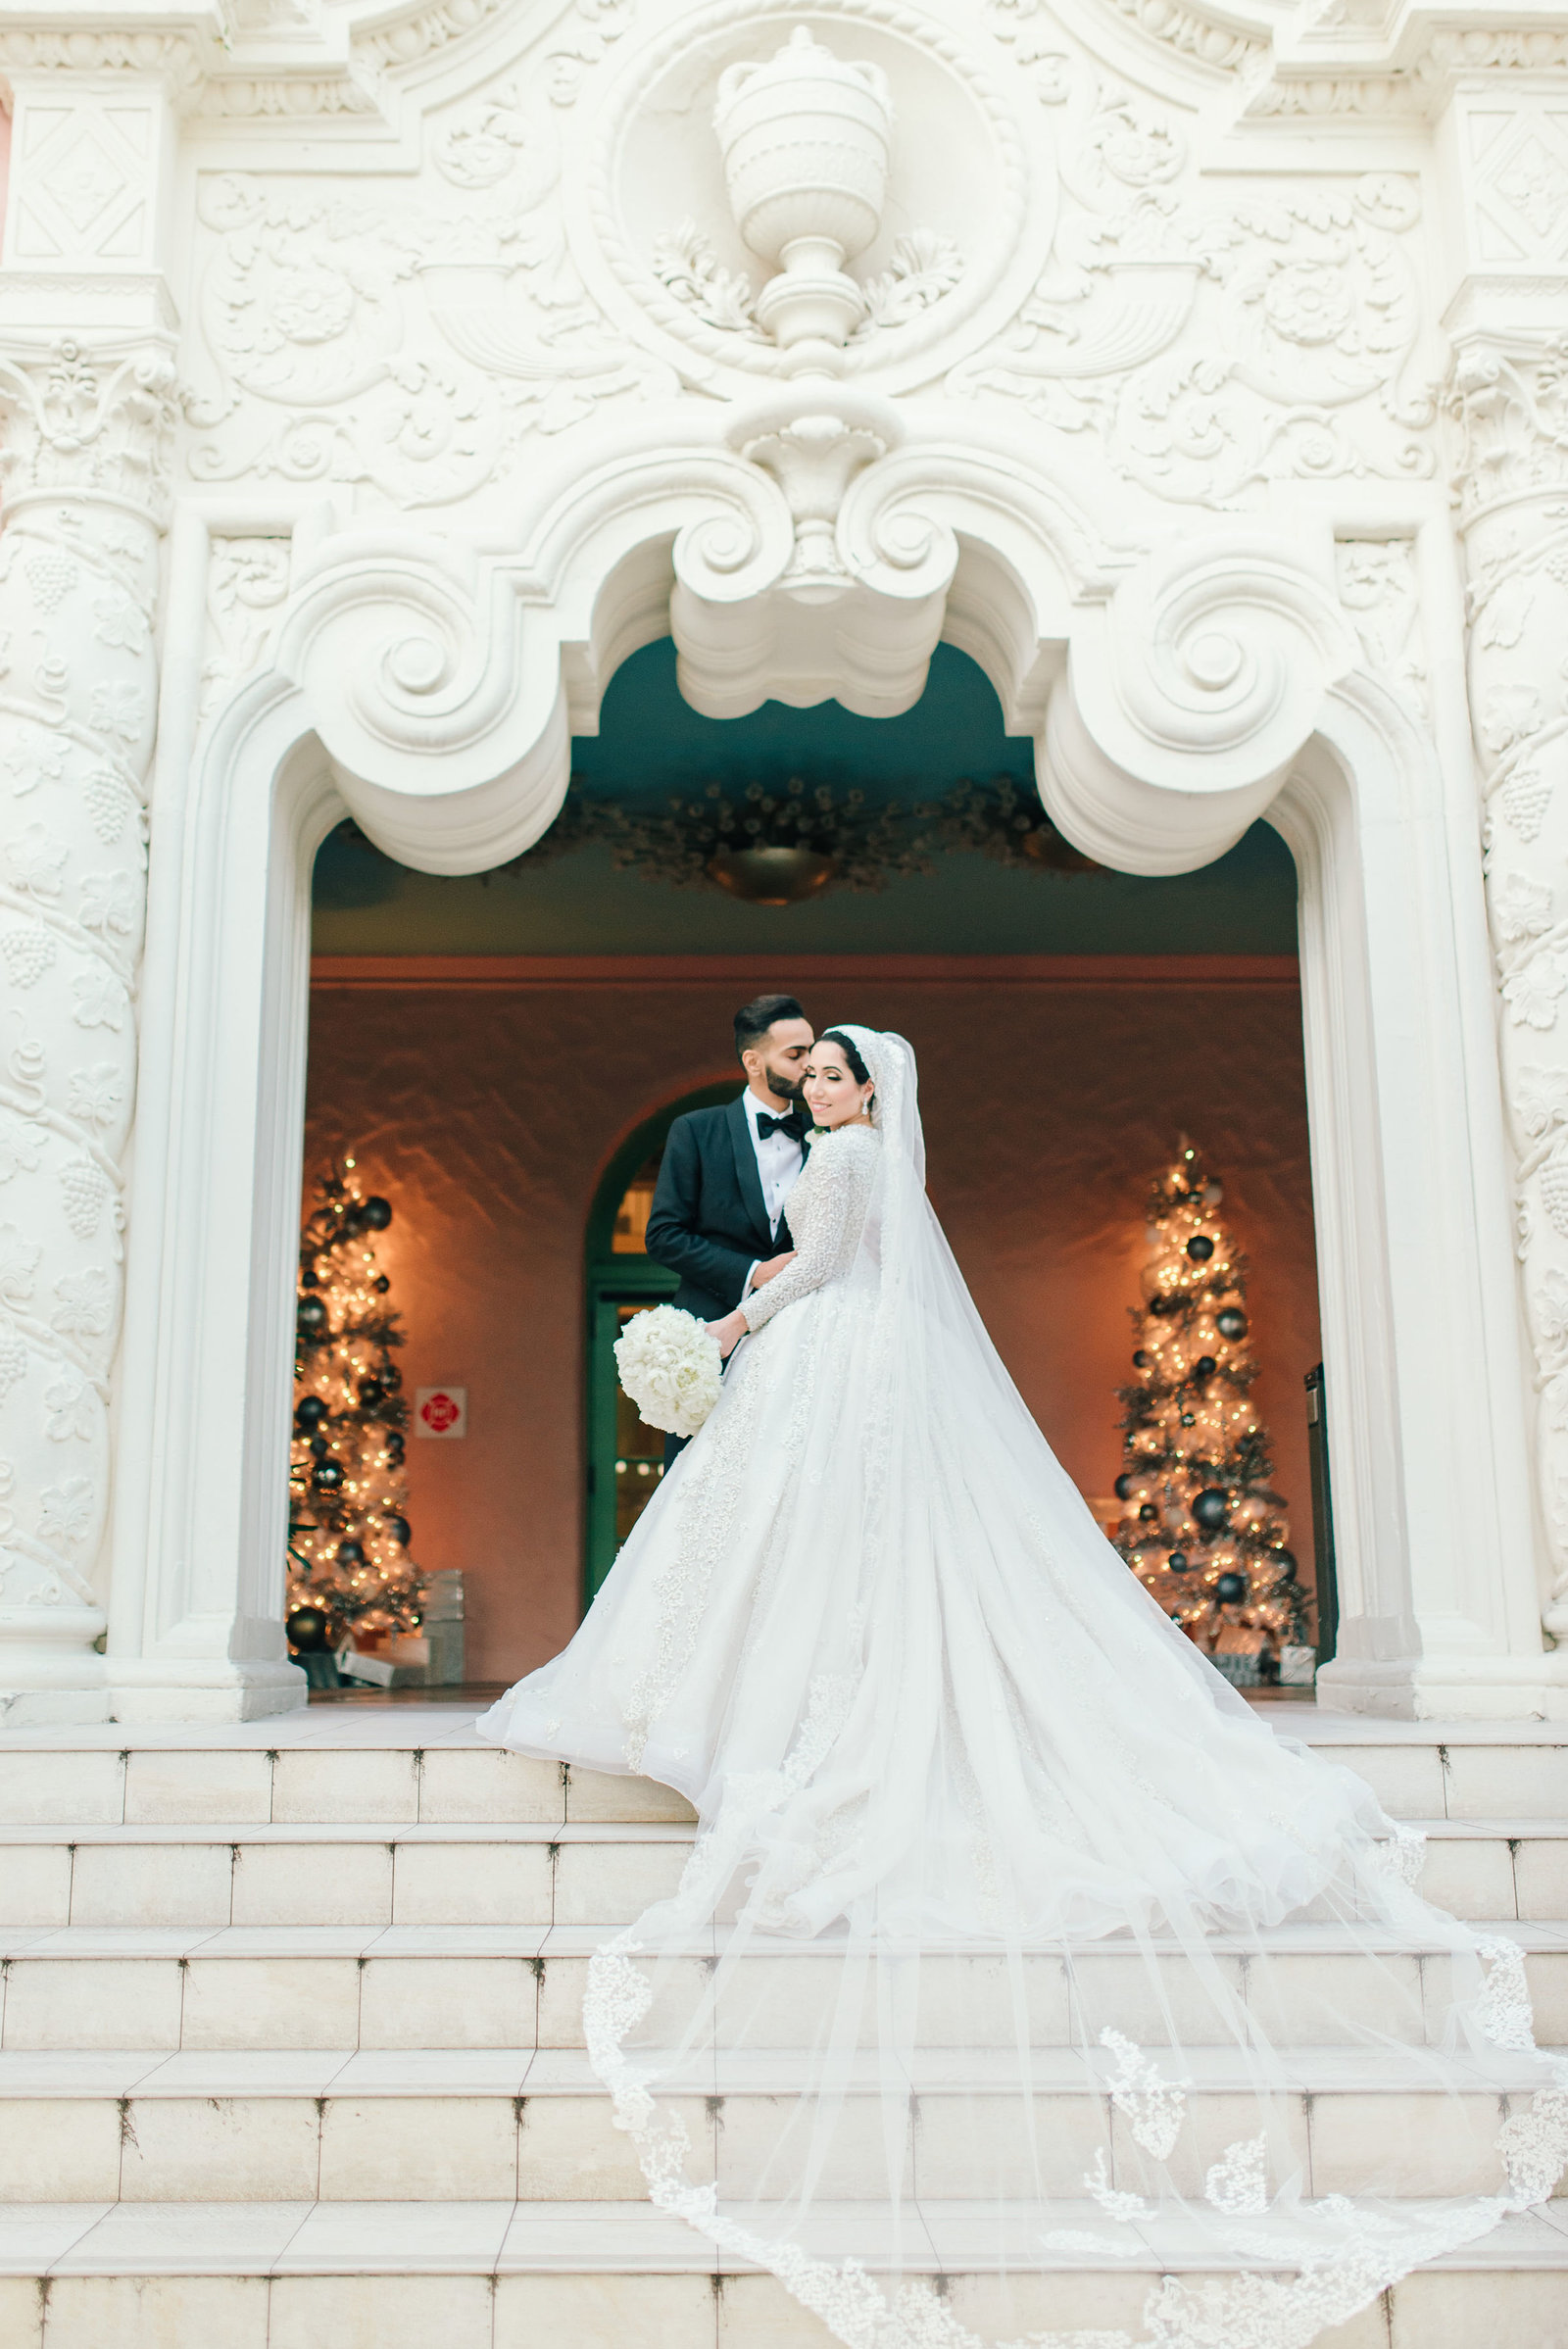 LTP_6147Noor & Ahmad Vinoy Renaissance Wedding in St. Petersburg by Ledia Tashi Photography